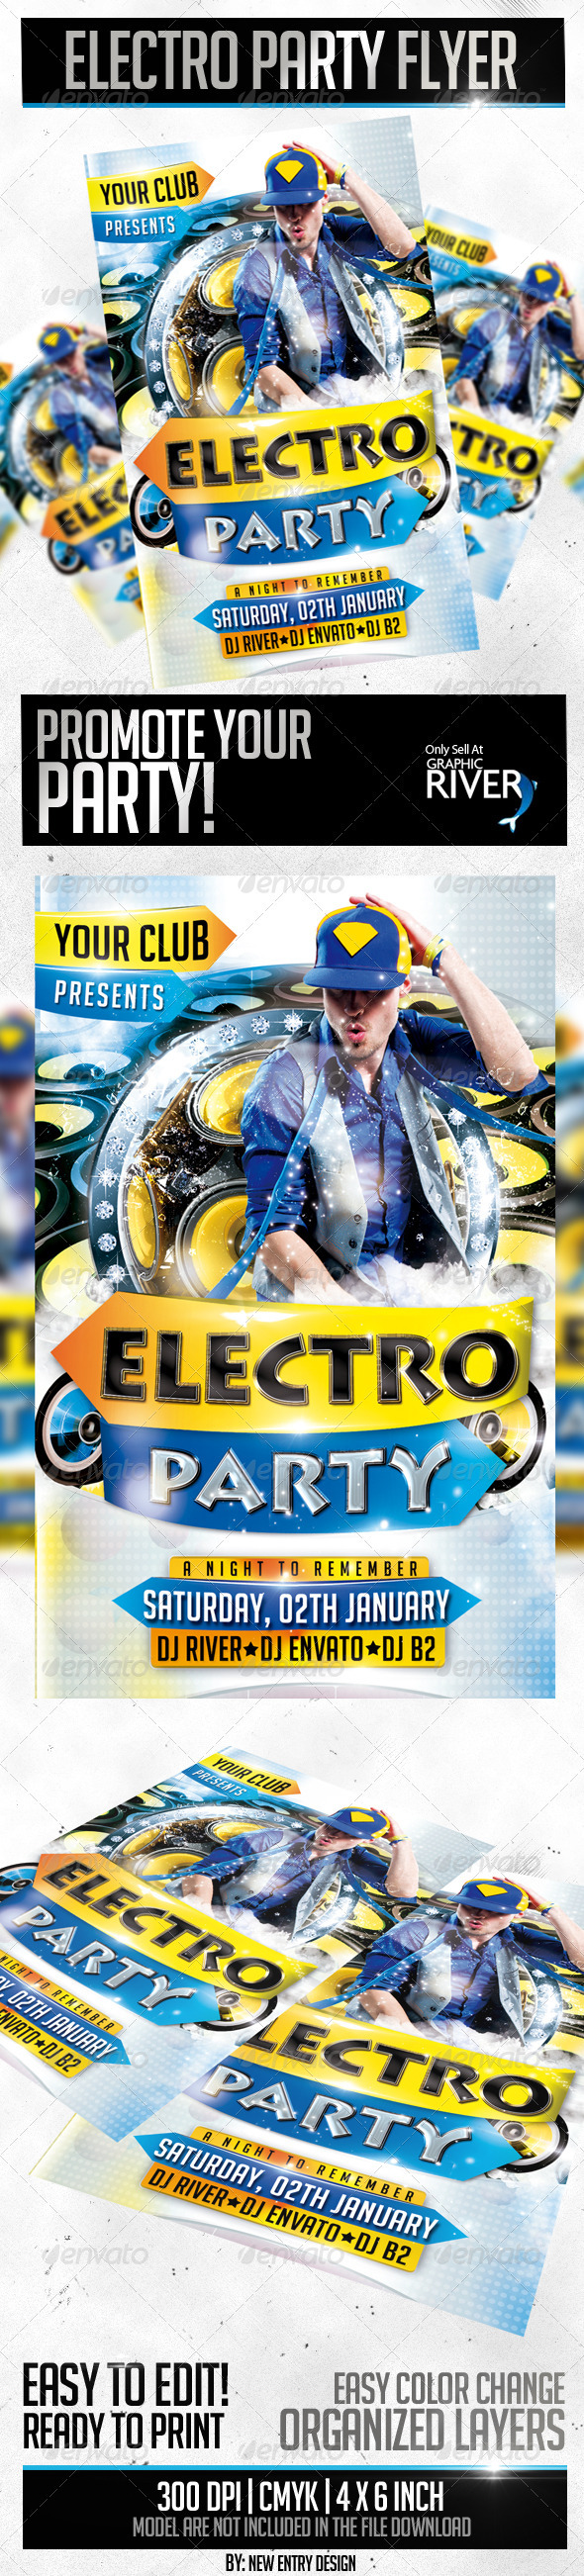 Electro Party Flyer Template Flyer template, Party flyer